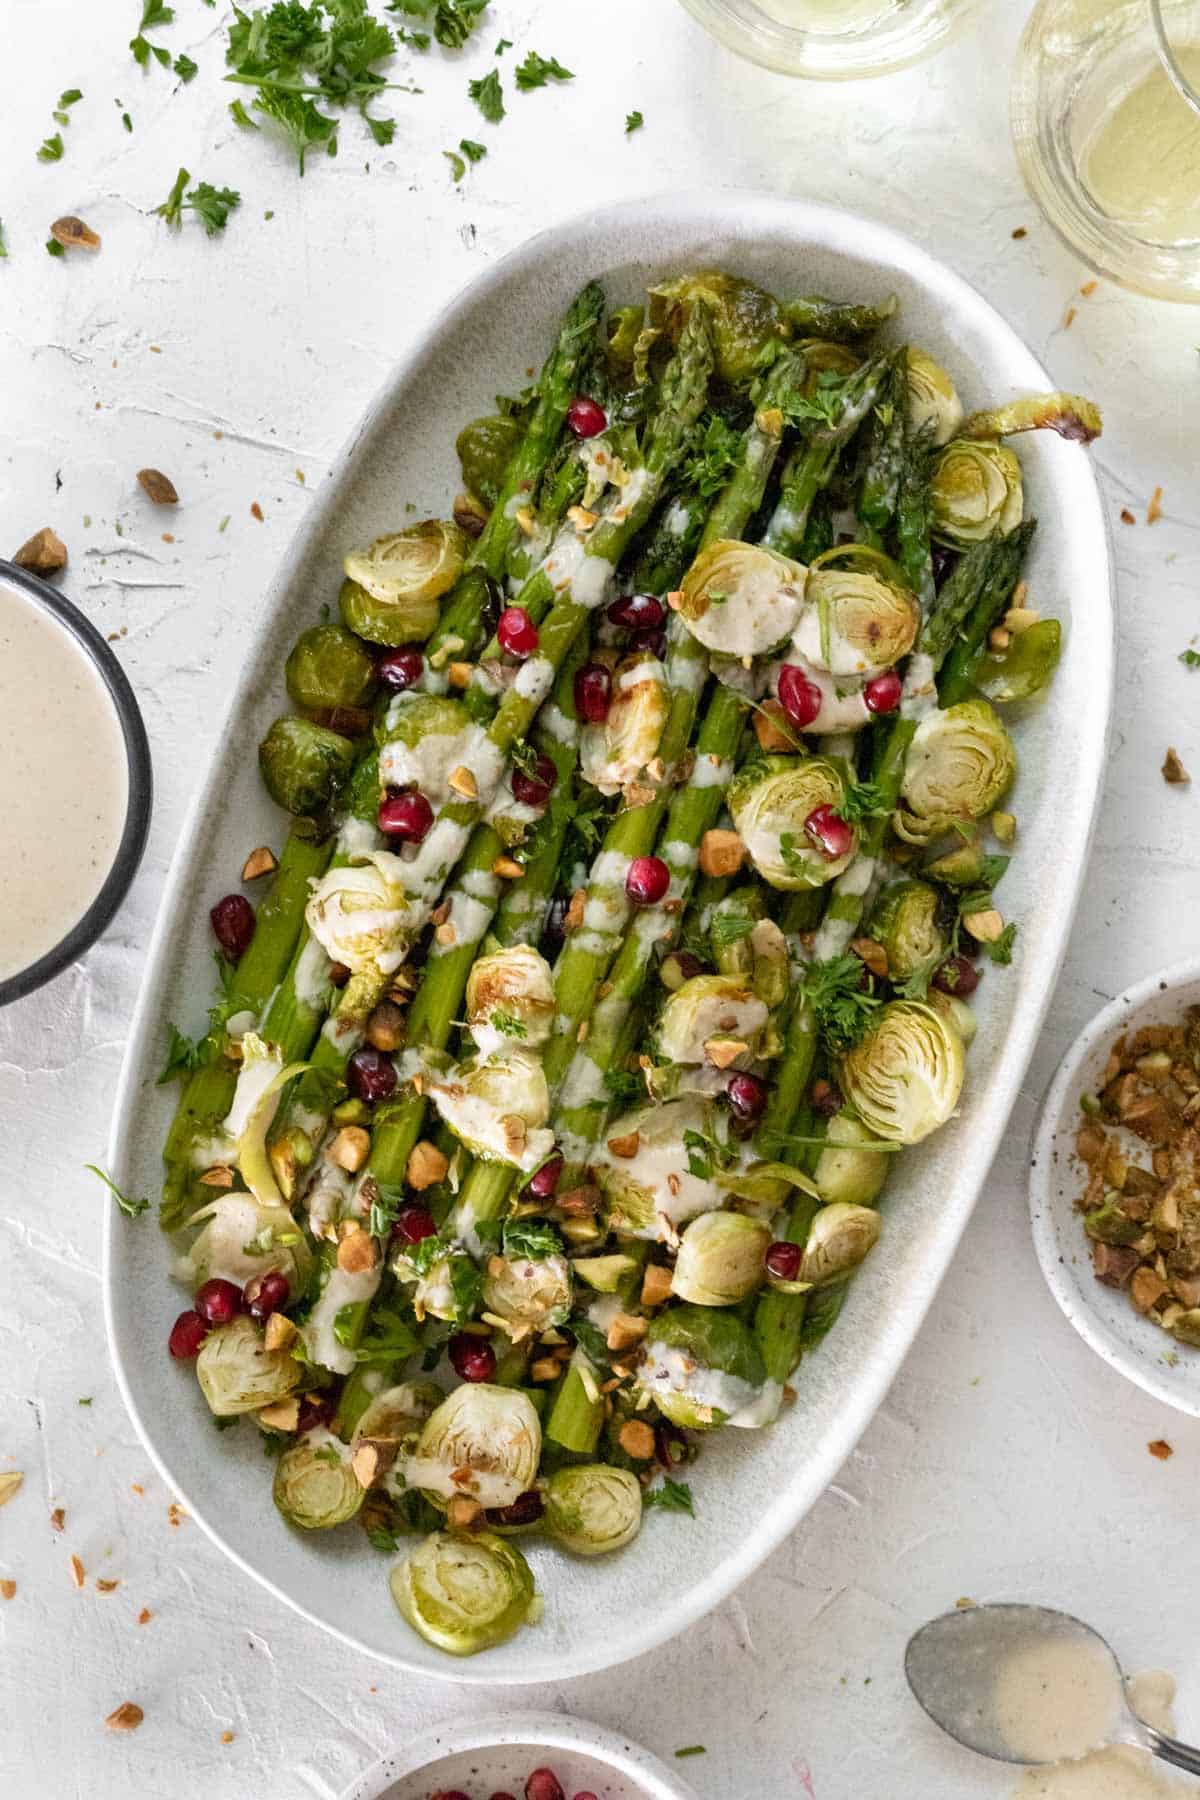 Roasted asparagus and brussels sprouts on an oval platter with bowls of extra sauce, pistachios, and pomegranate seeds around it.